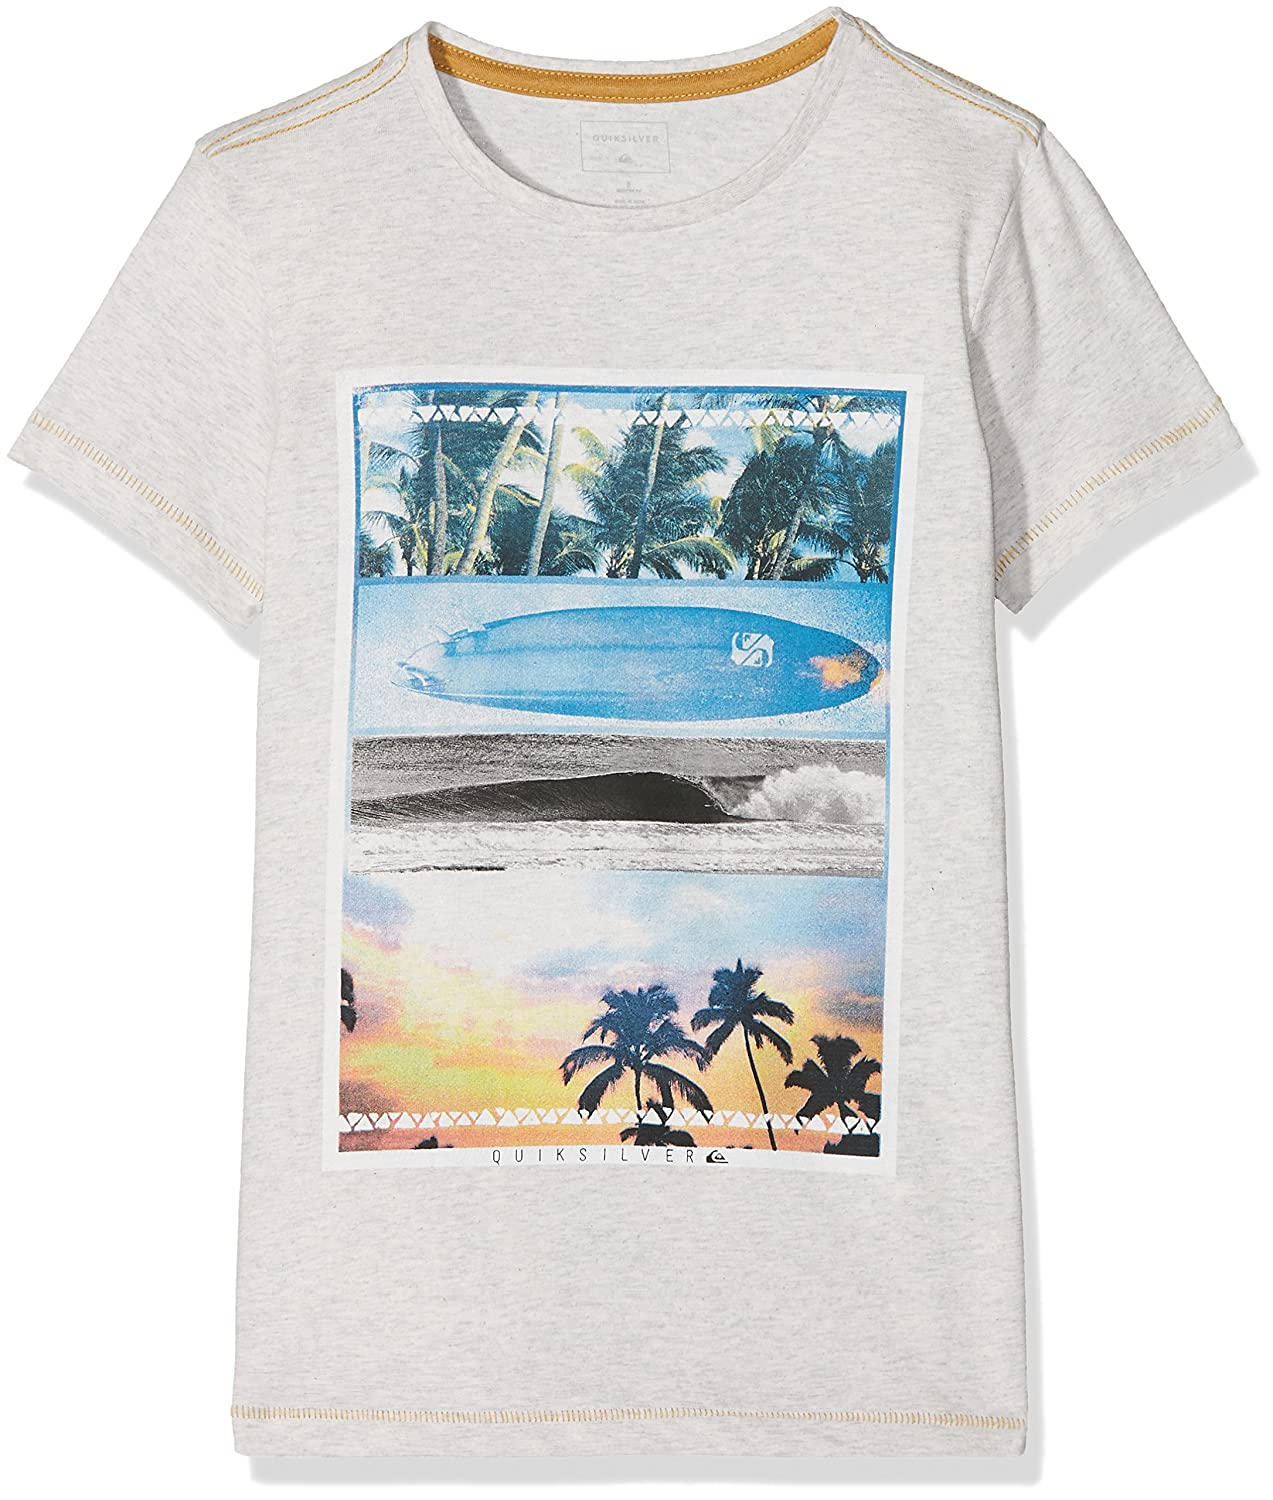 Quiksilver Boys Heather Place to Be Shirts /& Tees